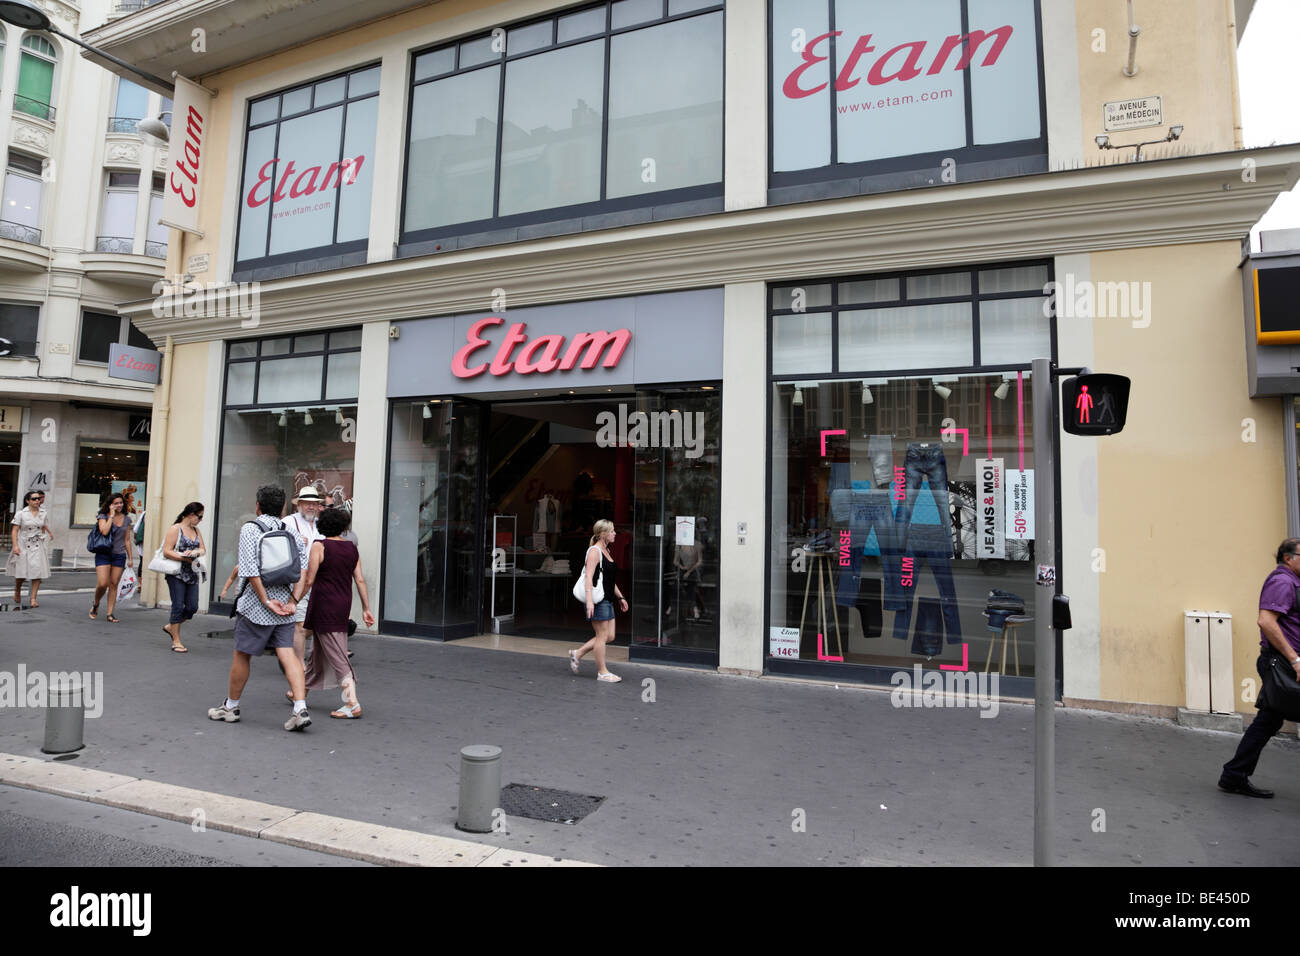 4c8701da09d exterior of etam a fashion clothing store along avenue jean medecin nice  south of france